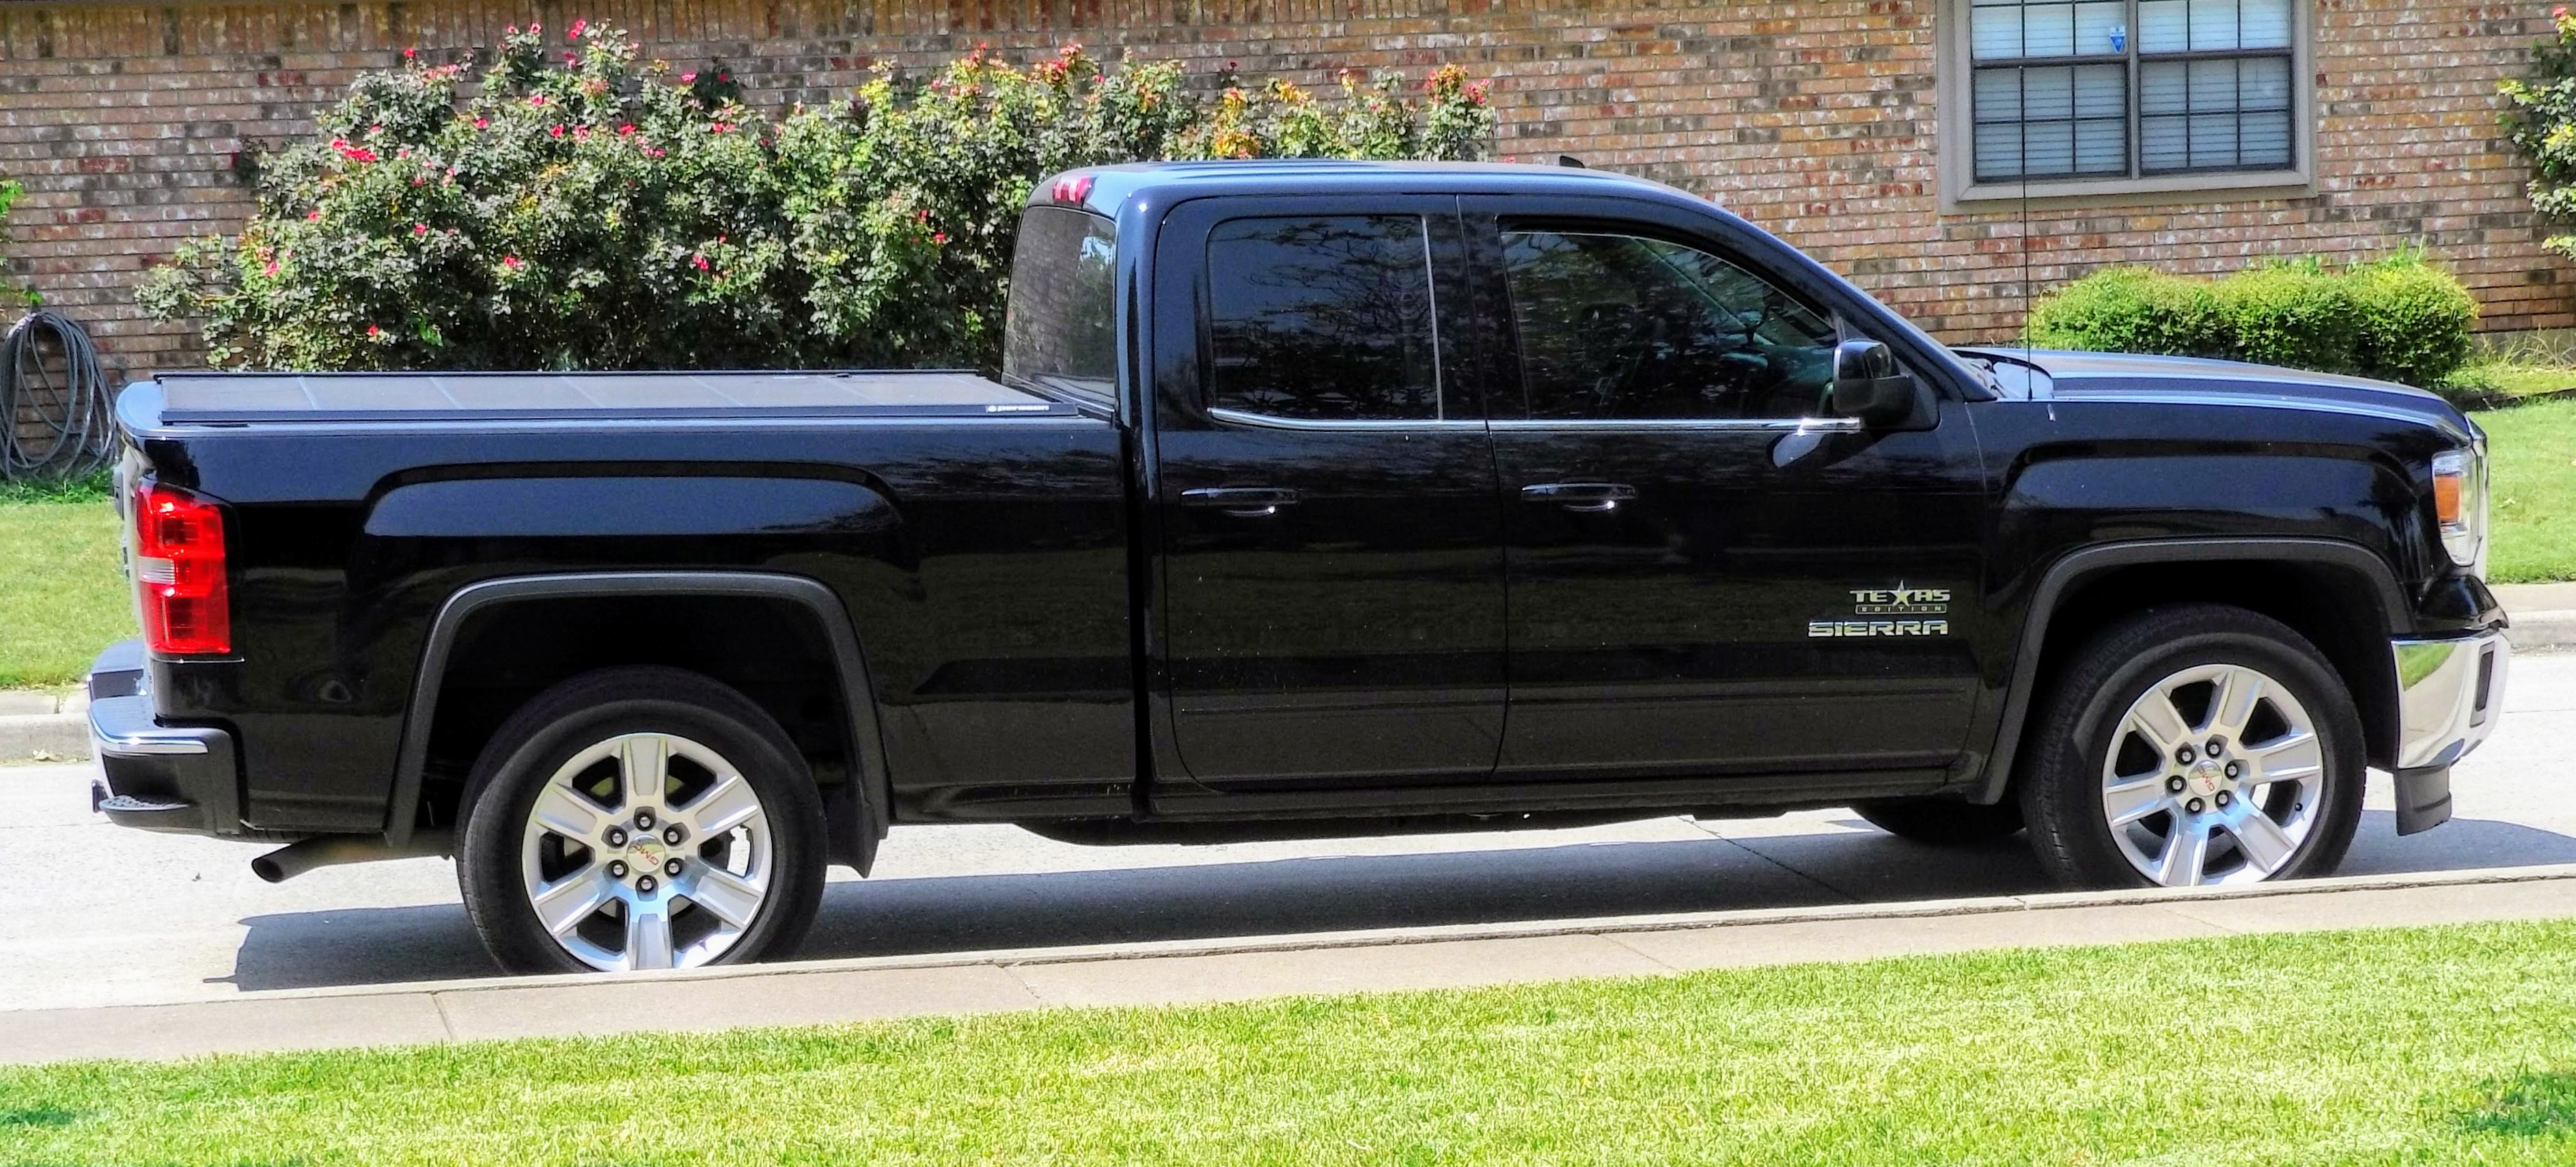 pickup truck raging gmc review topics diesel canyon